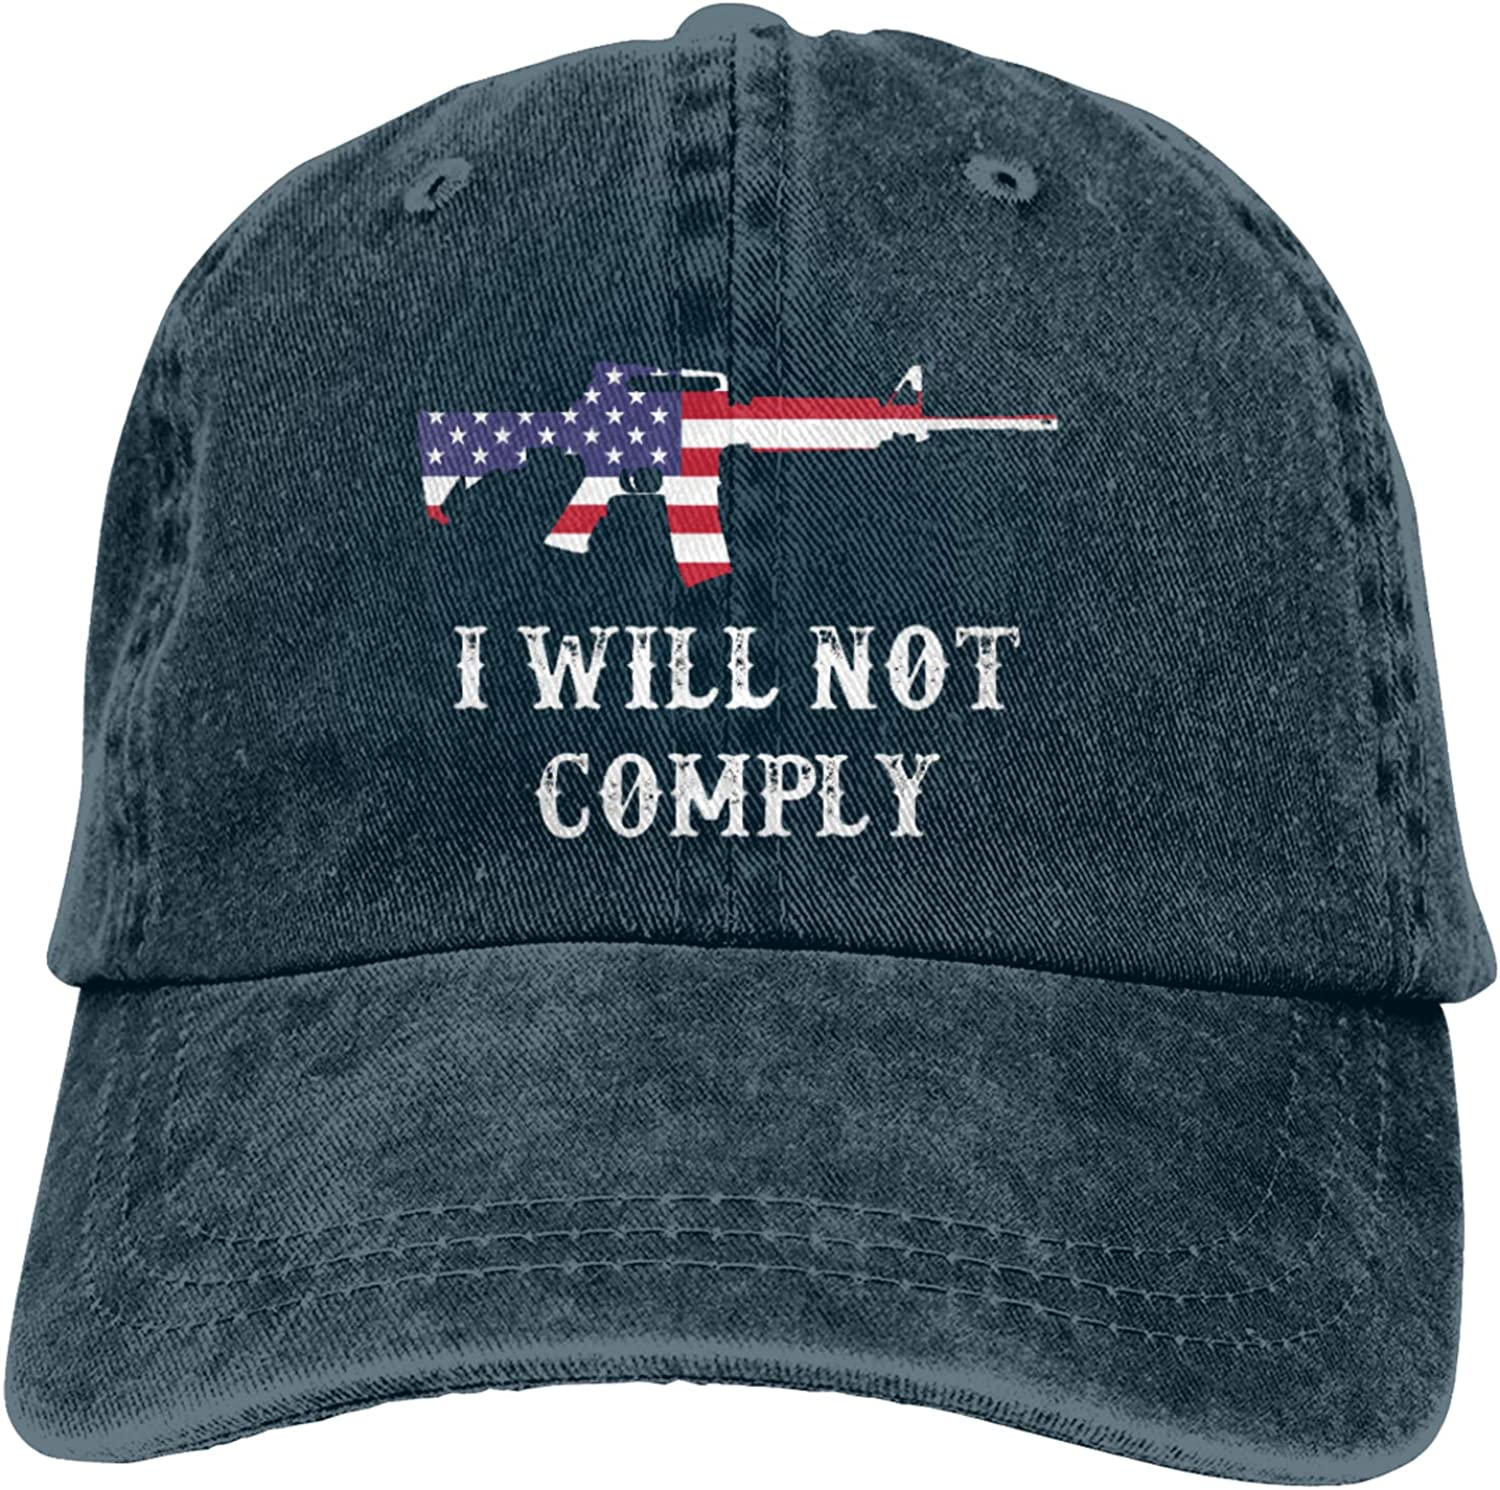 I Will Not Comply Hat,Unisex Retro Cowboy Hat Soft Breathable Cap Classic Adjustable Baseball Caps